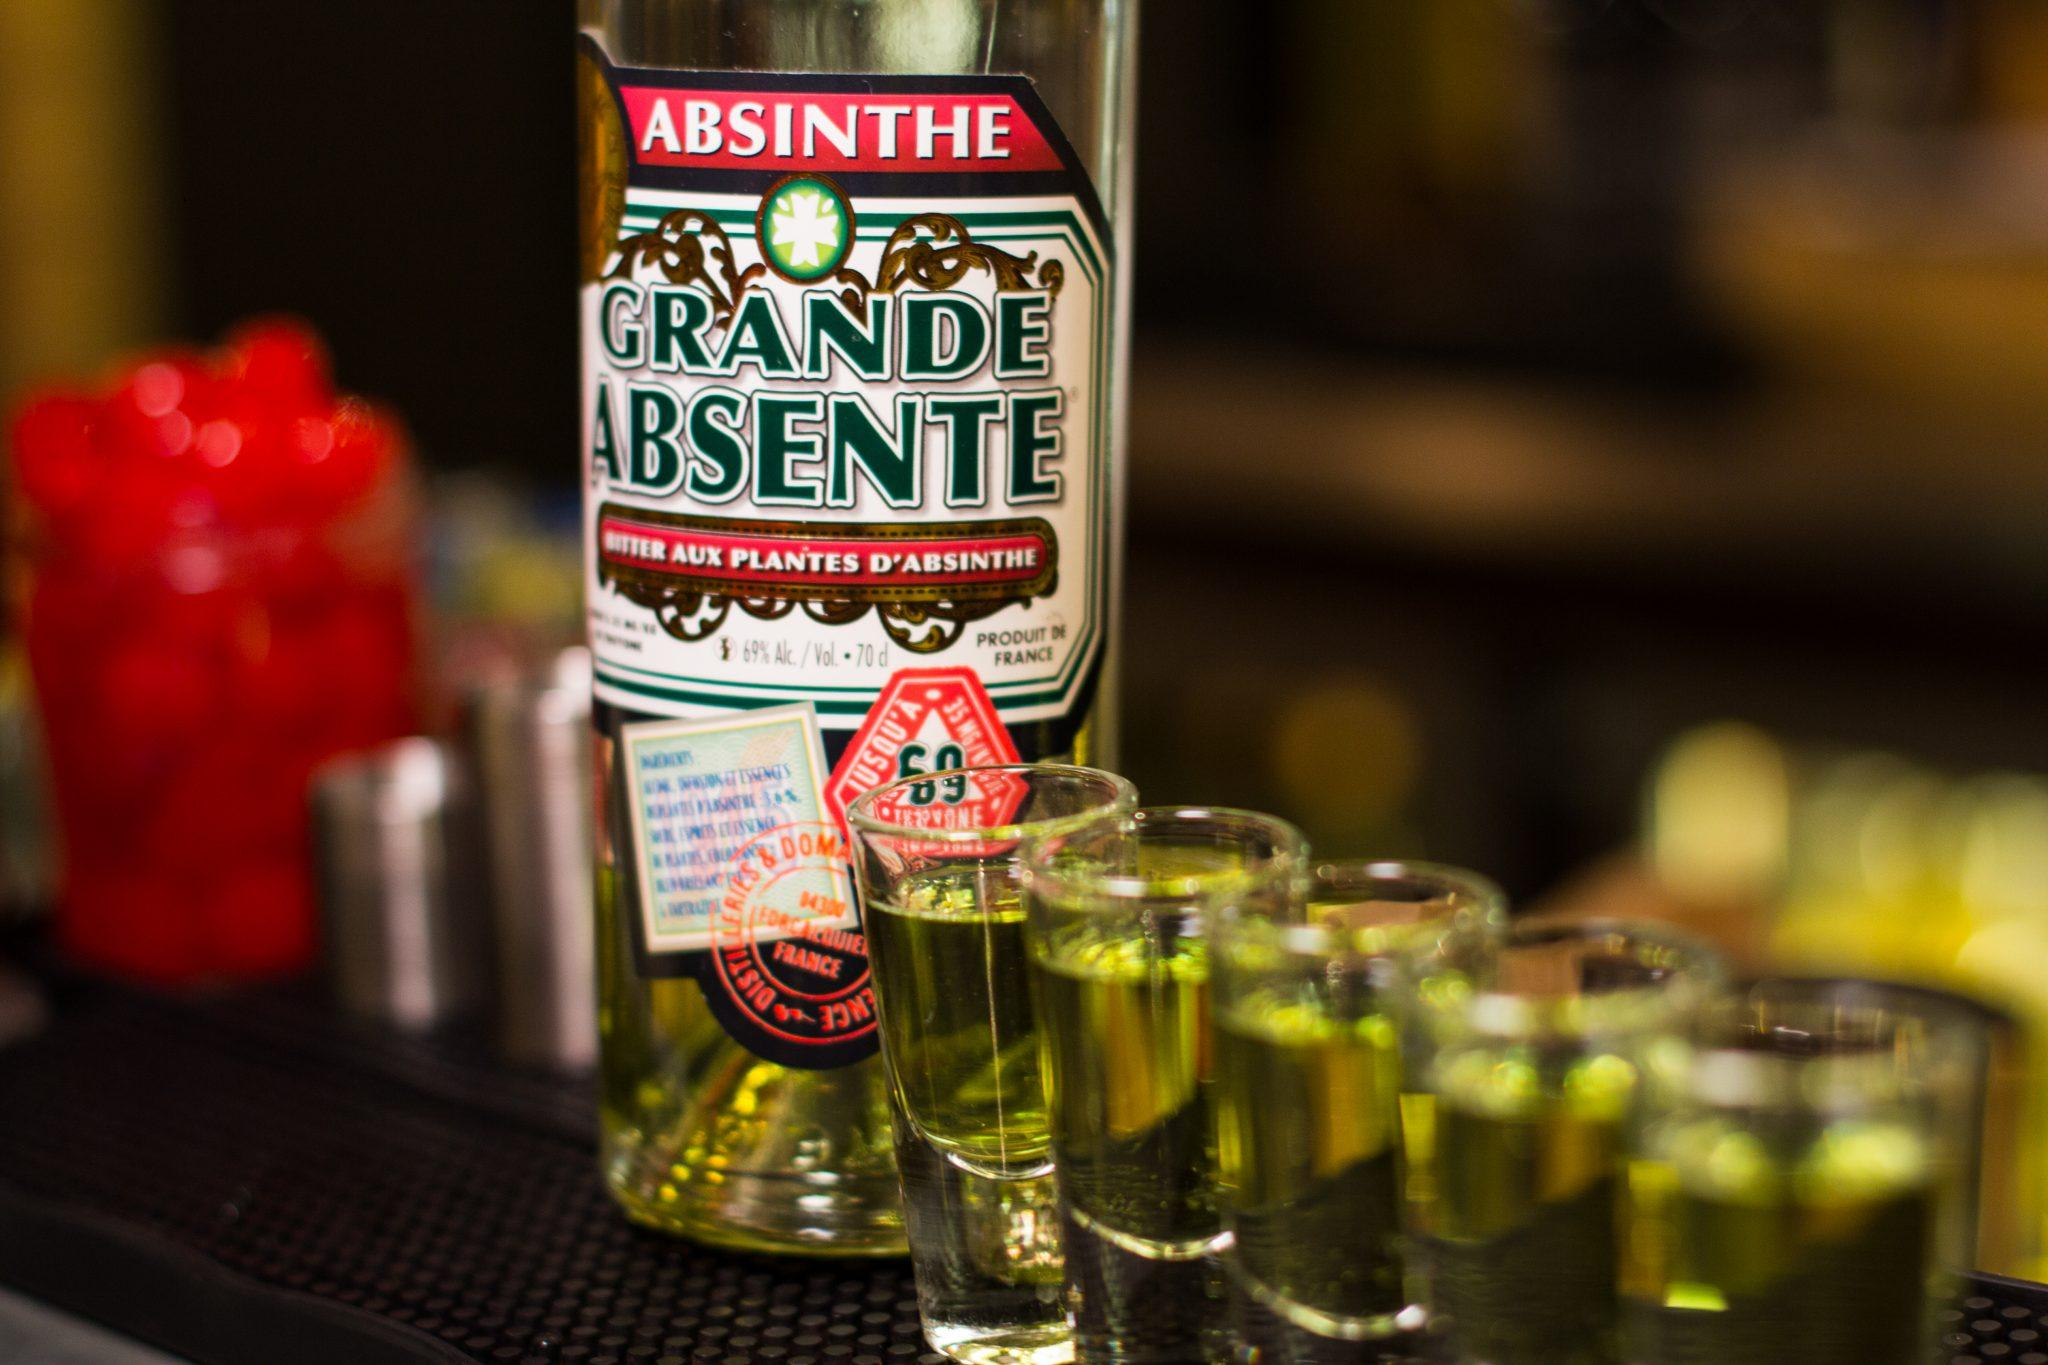 Lining some up for absinthe friends